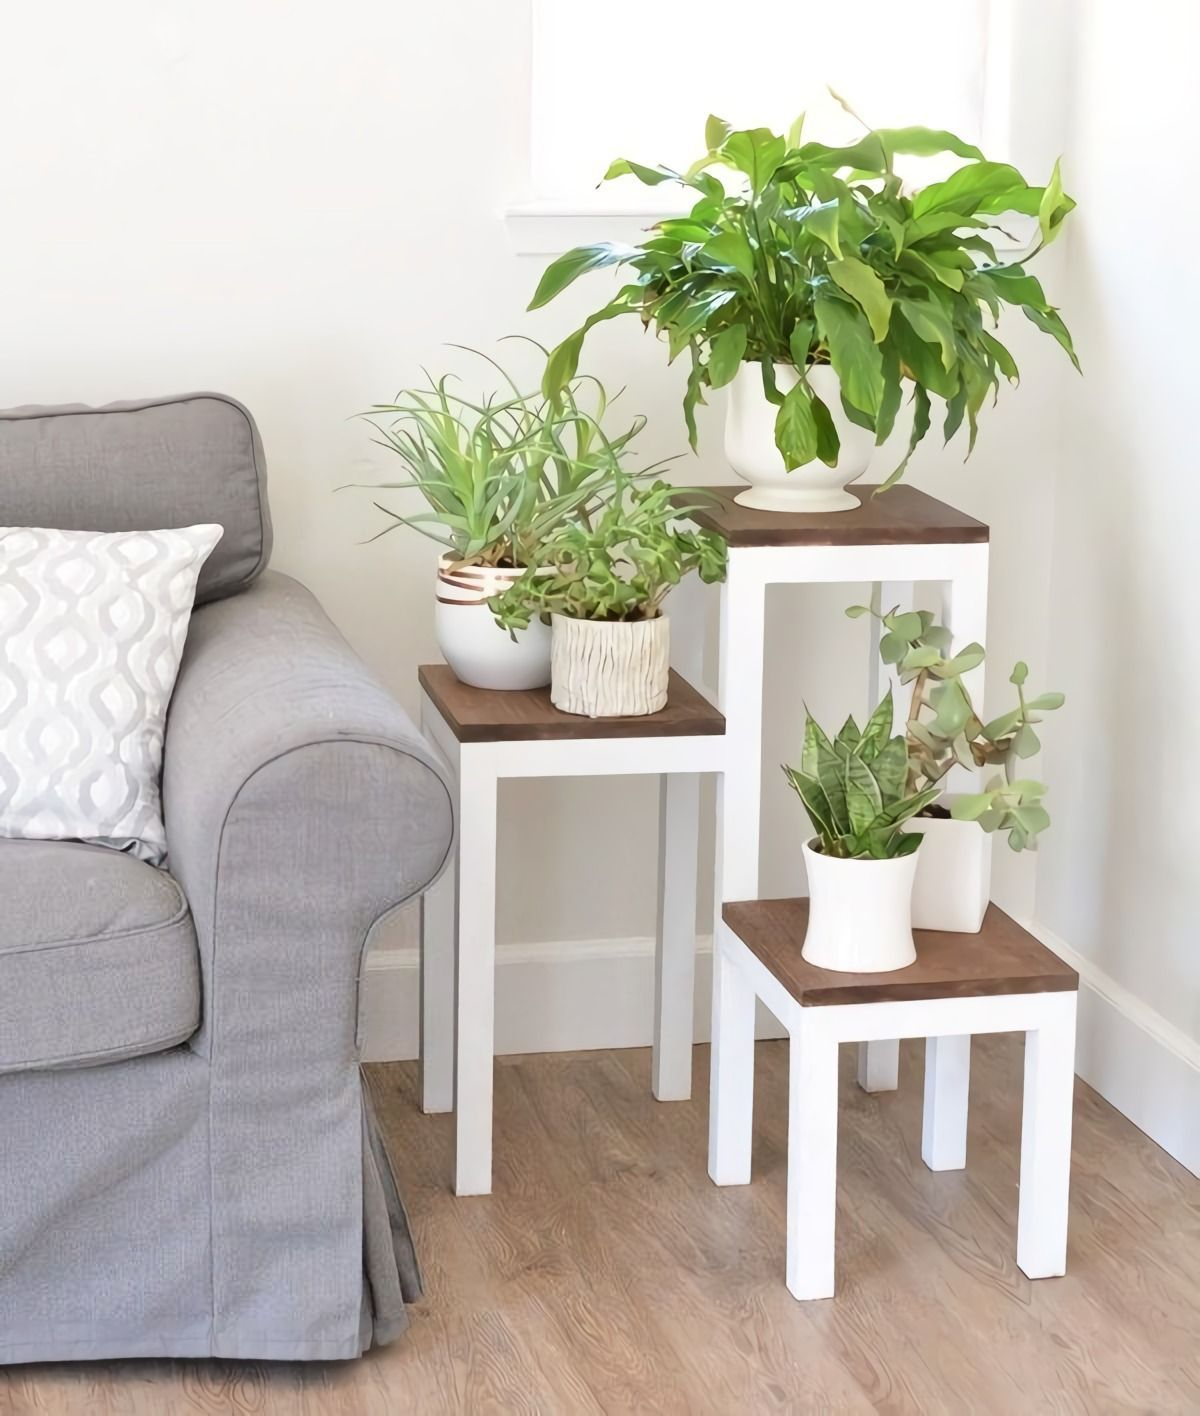 12 Elegant DIY Plant Stand Ideas and Inspirations in 2020 ... on House Plant Stand Ideas  id=41325